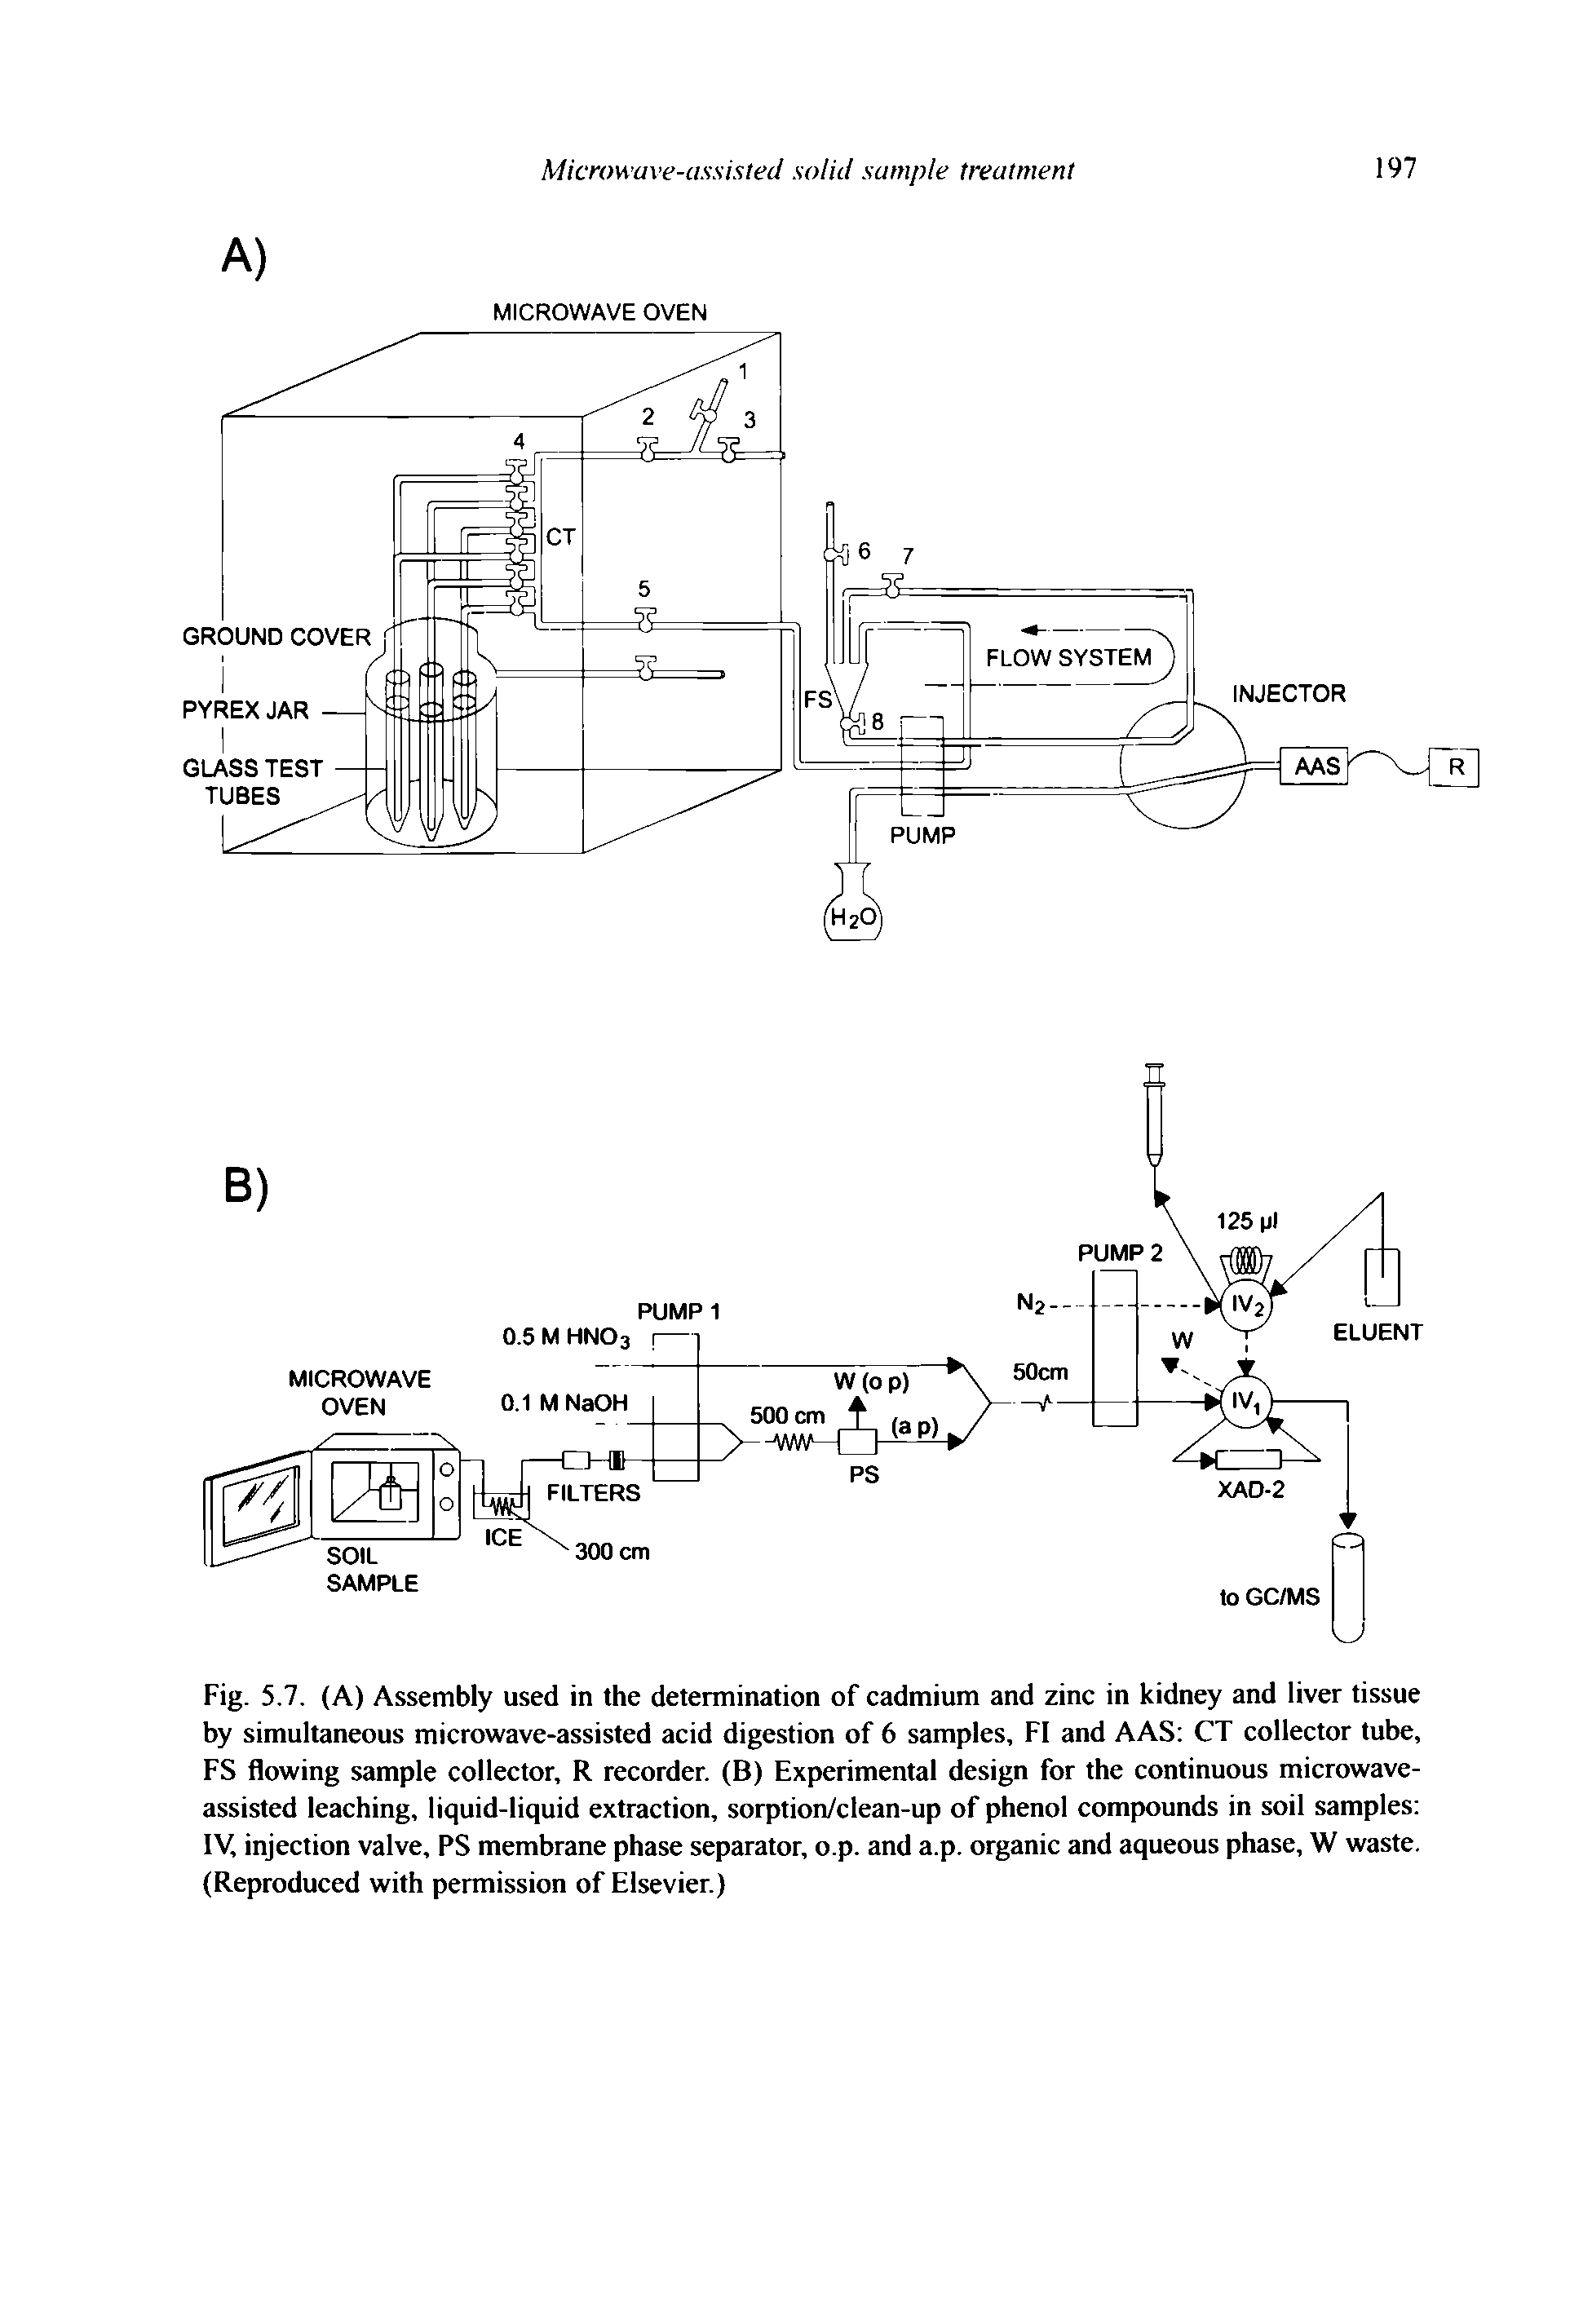 "Fig. 5.7. (A) Assembly used in the determination of cadmium and zinc in kidney and <a href=""/info/liver_tissue"">liver tissue</a> by simultaneous <a href=""/info/acids_in_microwave_assisted_digestion"">microwave-assisted acid digestion</a> of 6 samples, FI and AAS CT collector tube, FS <a href=""/info/on_flow_sample"">flowing sample</a> collector, R recorder. (B) <a href=""/info/rsm_and_experimental_design"">Experimental design</a> for the continuous <a href=""/info/leaching_microwave_assisted"">microwave-assisted leaching</a>, <a href=""/info/liquid_solid_extraction"">liquid-liquid extraction</a>, sorption/clean-up of <a href=""/info/phenolic_compounds"">phenol compounds</a> in <a href=""/info/d_and_t_in_soil_samples"">soil samples</a> IV, <a href=""/info/valve_injection"">injection valve</a>, PS <a href=""/info/phase_separation_membranes"">membrane phase separator</a>, o.p. and a.p. organic and <a href=""/info/aqueous_phase"">aqueous phase</a>, W waste. (Reproduced with permission of Elsevier.)"